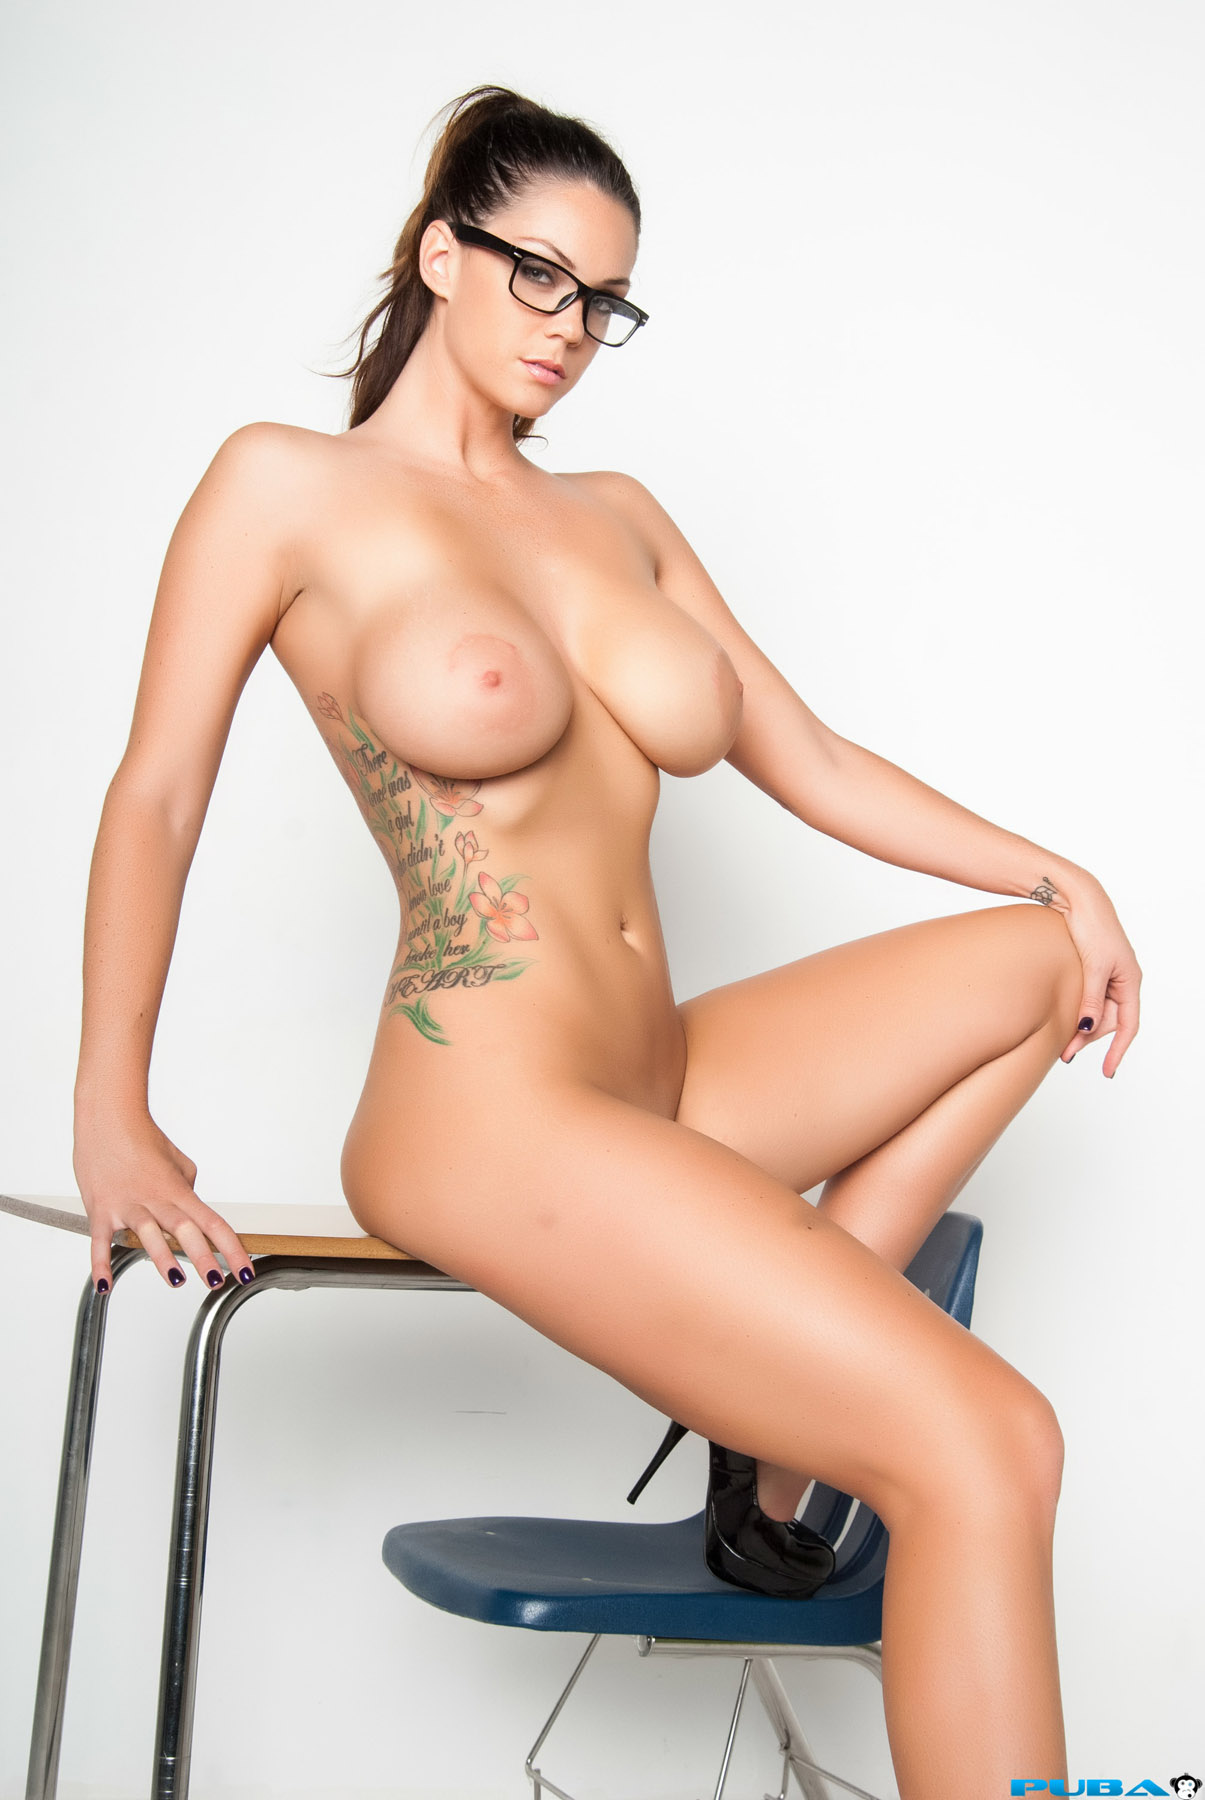 Valuable ALISON TYLER NUDE PICTURES